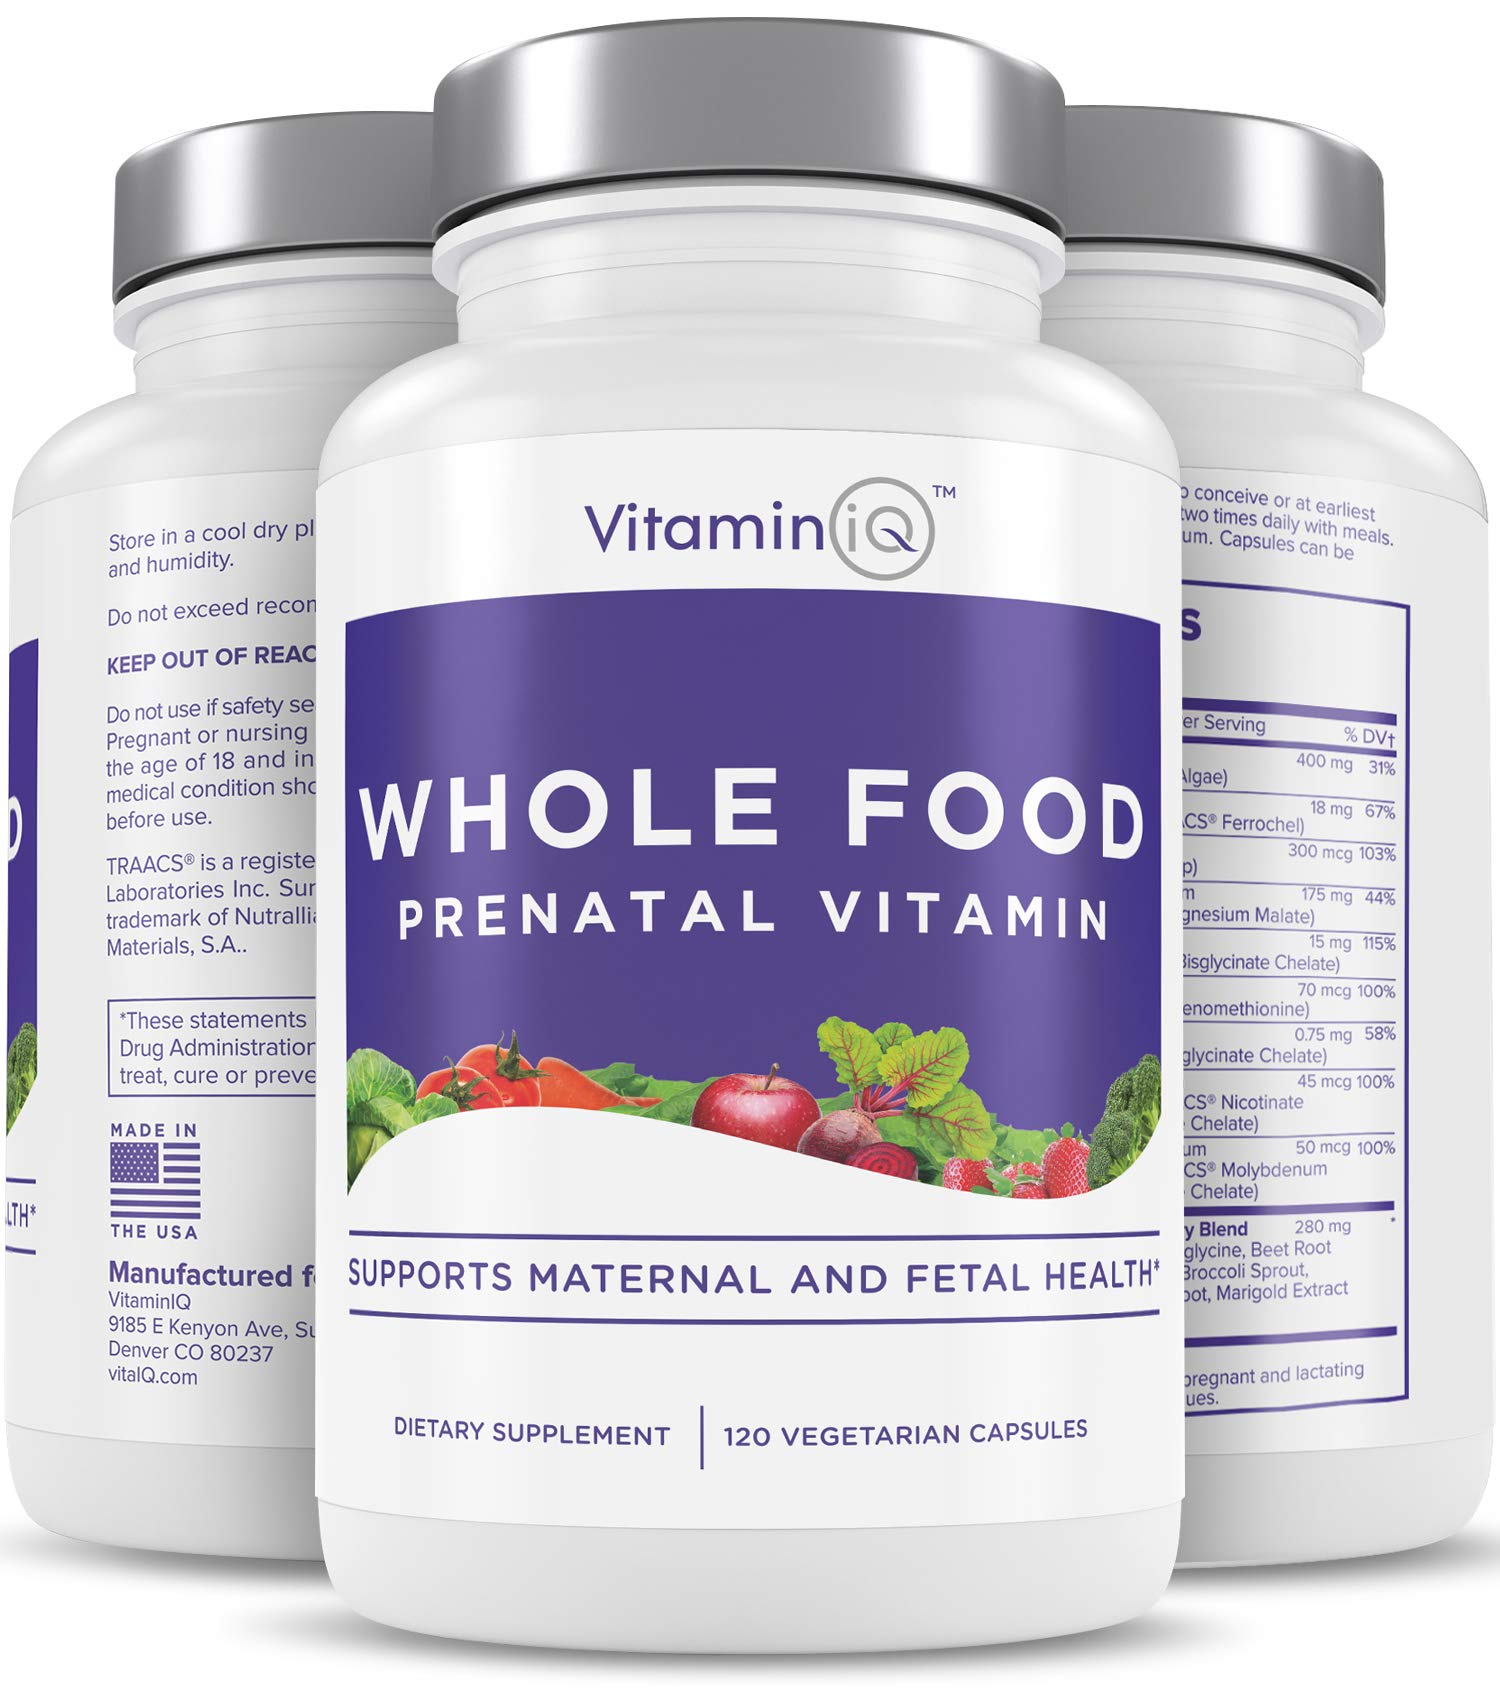 VitaminIQ Whole Food Prenatal Vitamins (120 Capsules) Natural Support for Maternal and Fetal Health, Prenatal Multivitamin for Women with Choline, B Vitamins and More, Vegan, No Soy, Gluten or Dairy